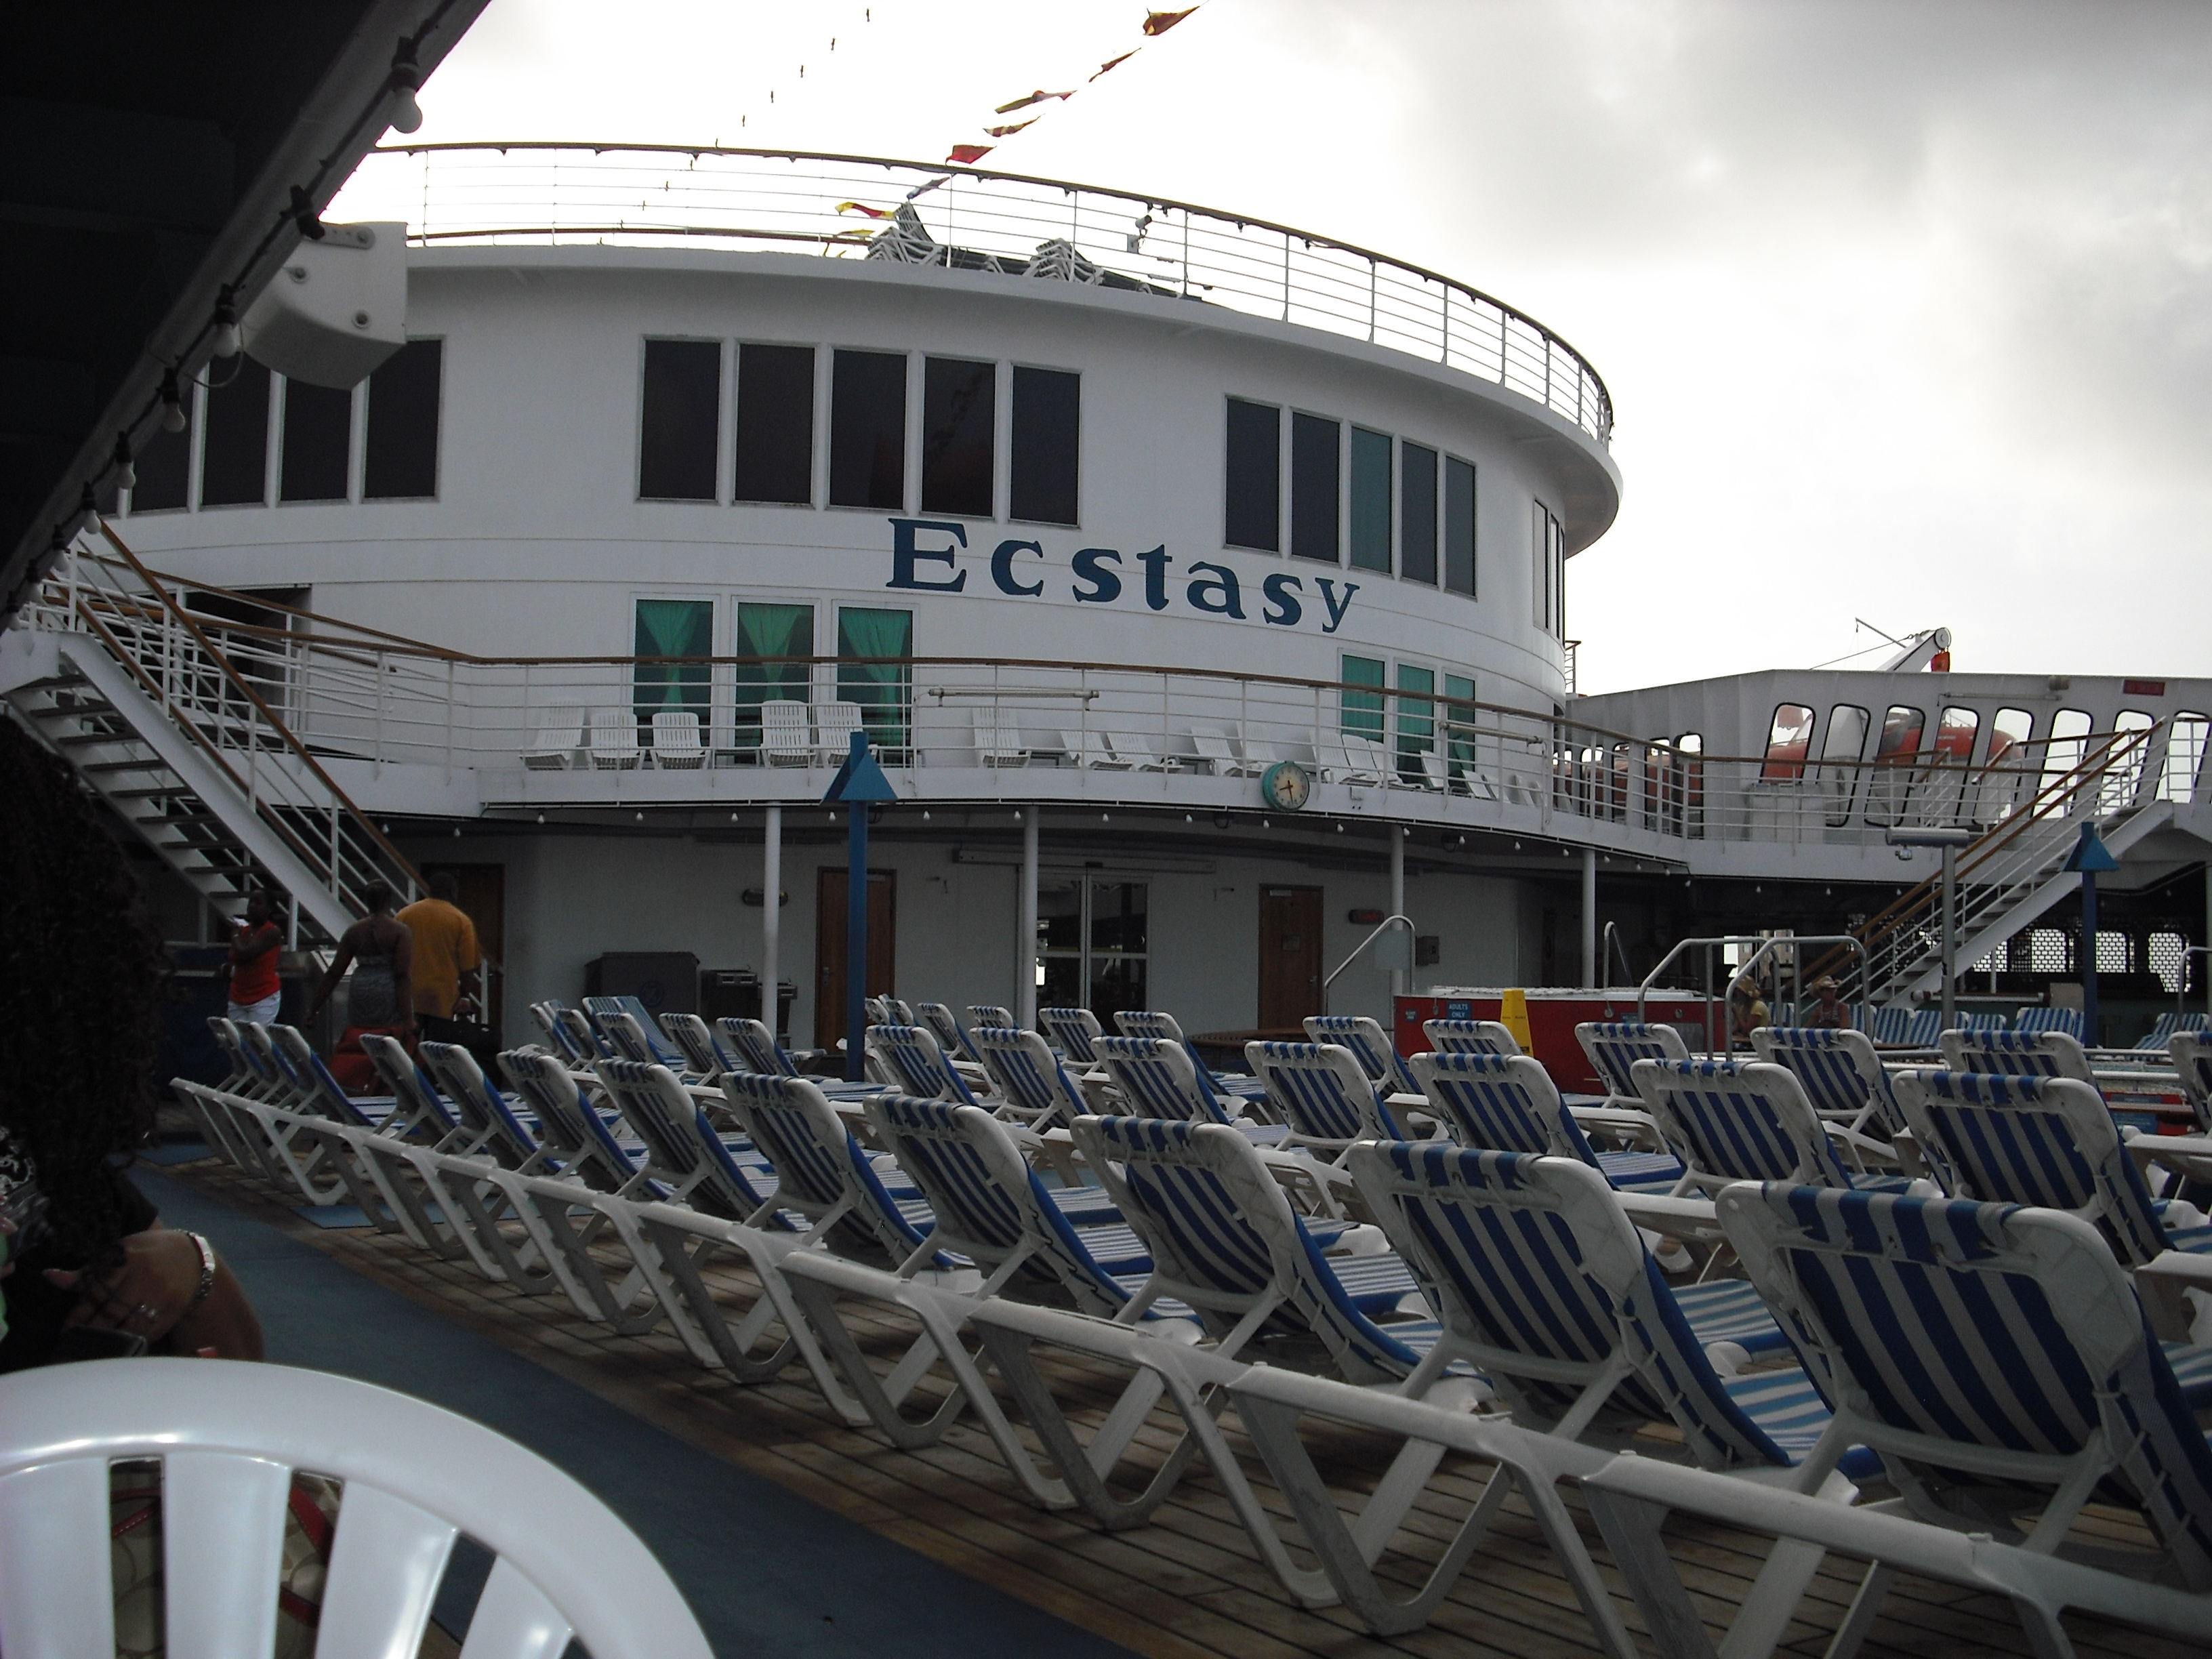 My First Cruise Ecstasy Carnival Ecstasy Cruise Review